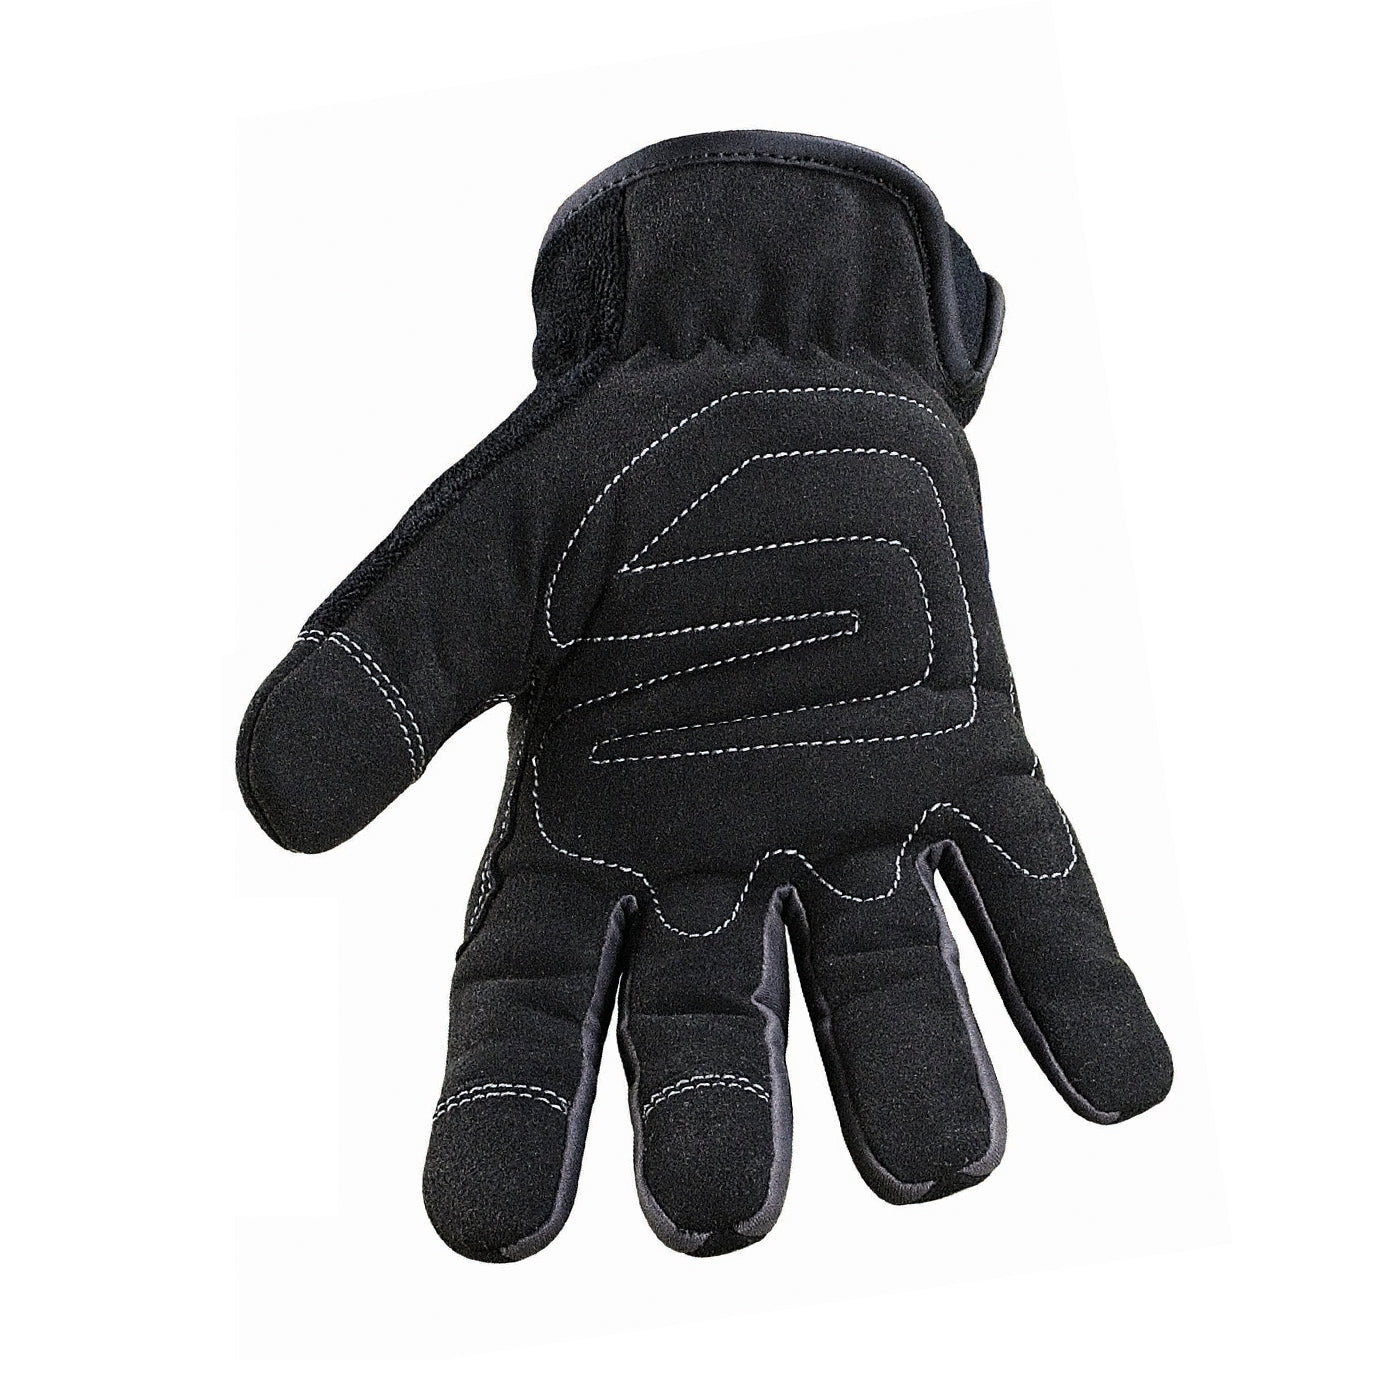 SlipFit Waterproof Winter